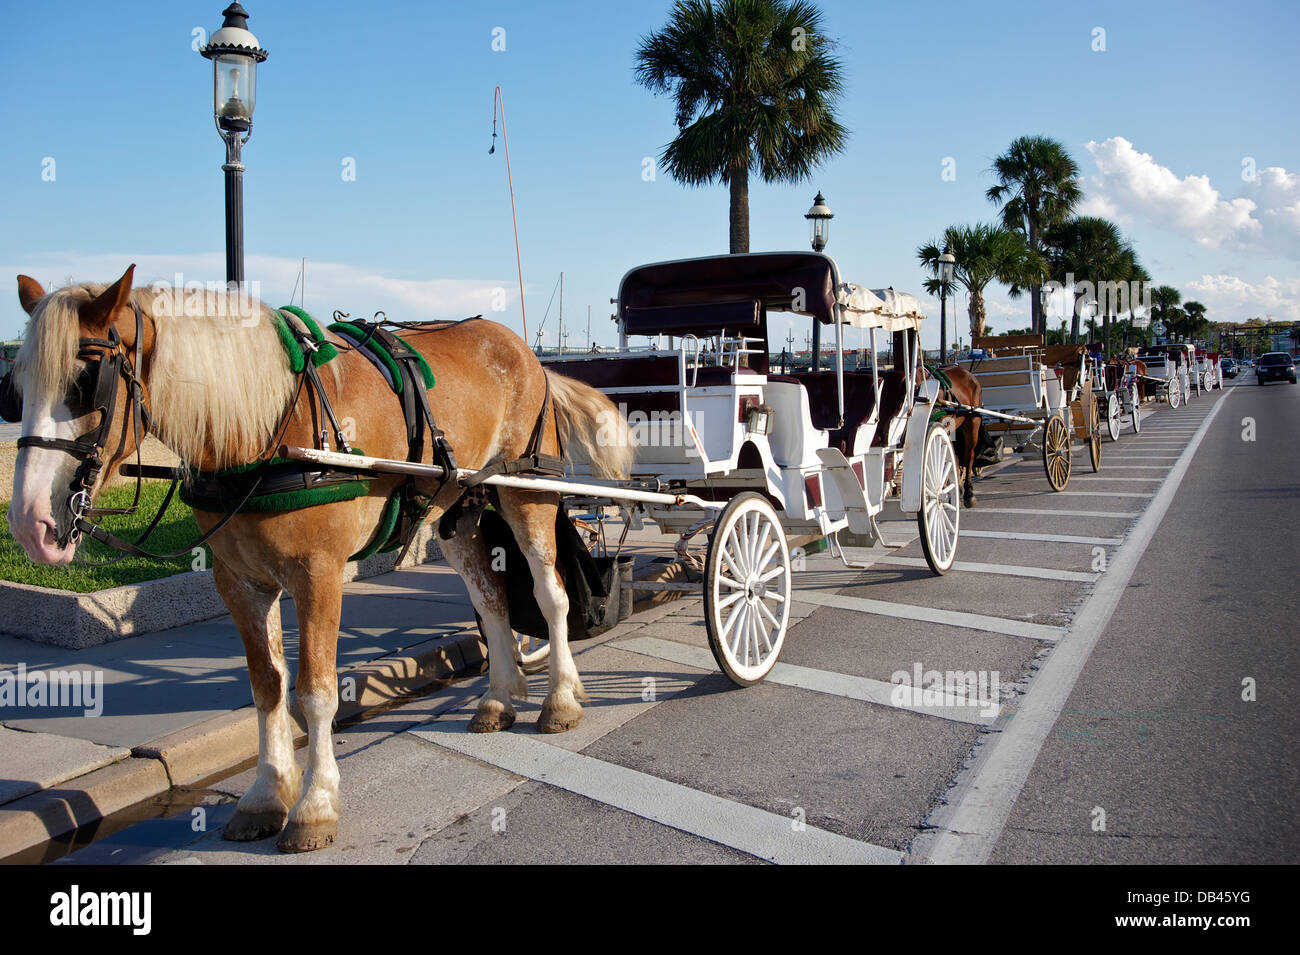 Carriages, St. Augustine, Florida - Stock Image